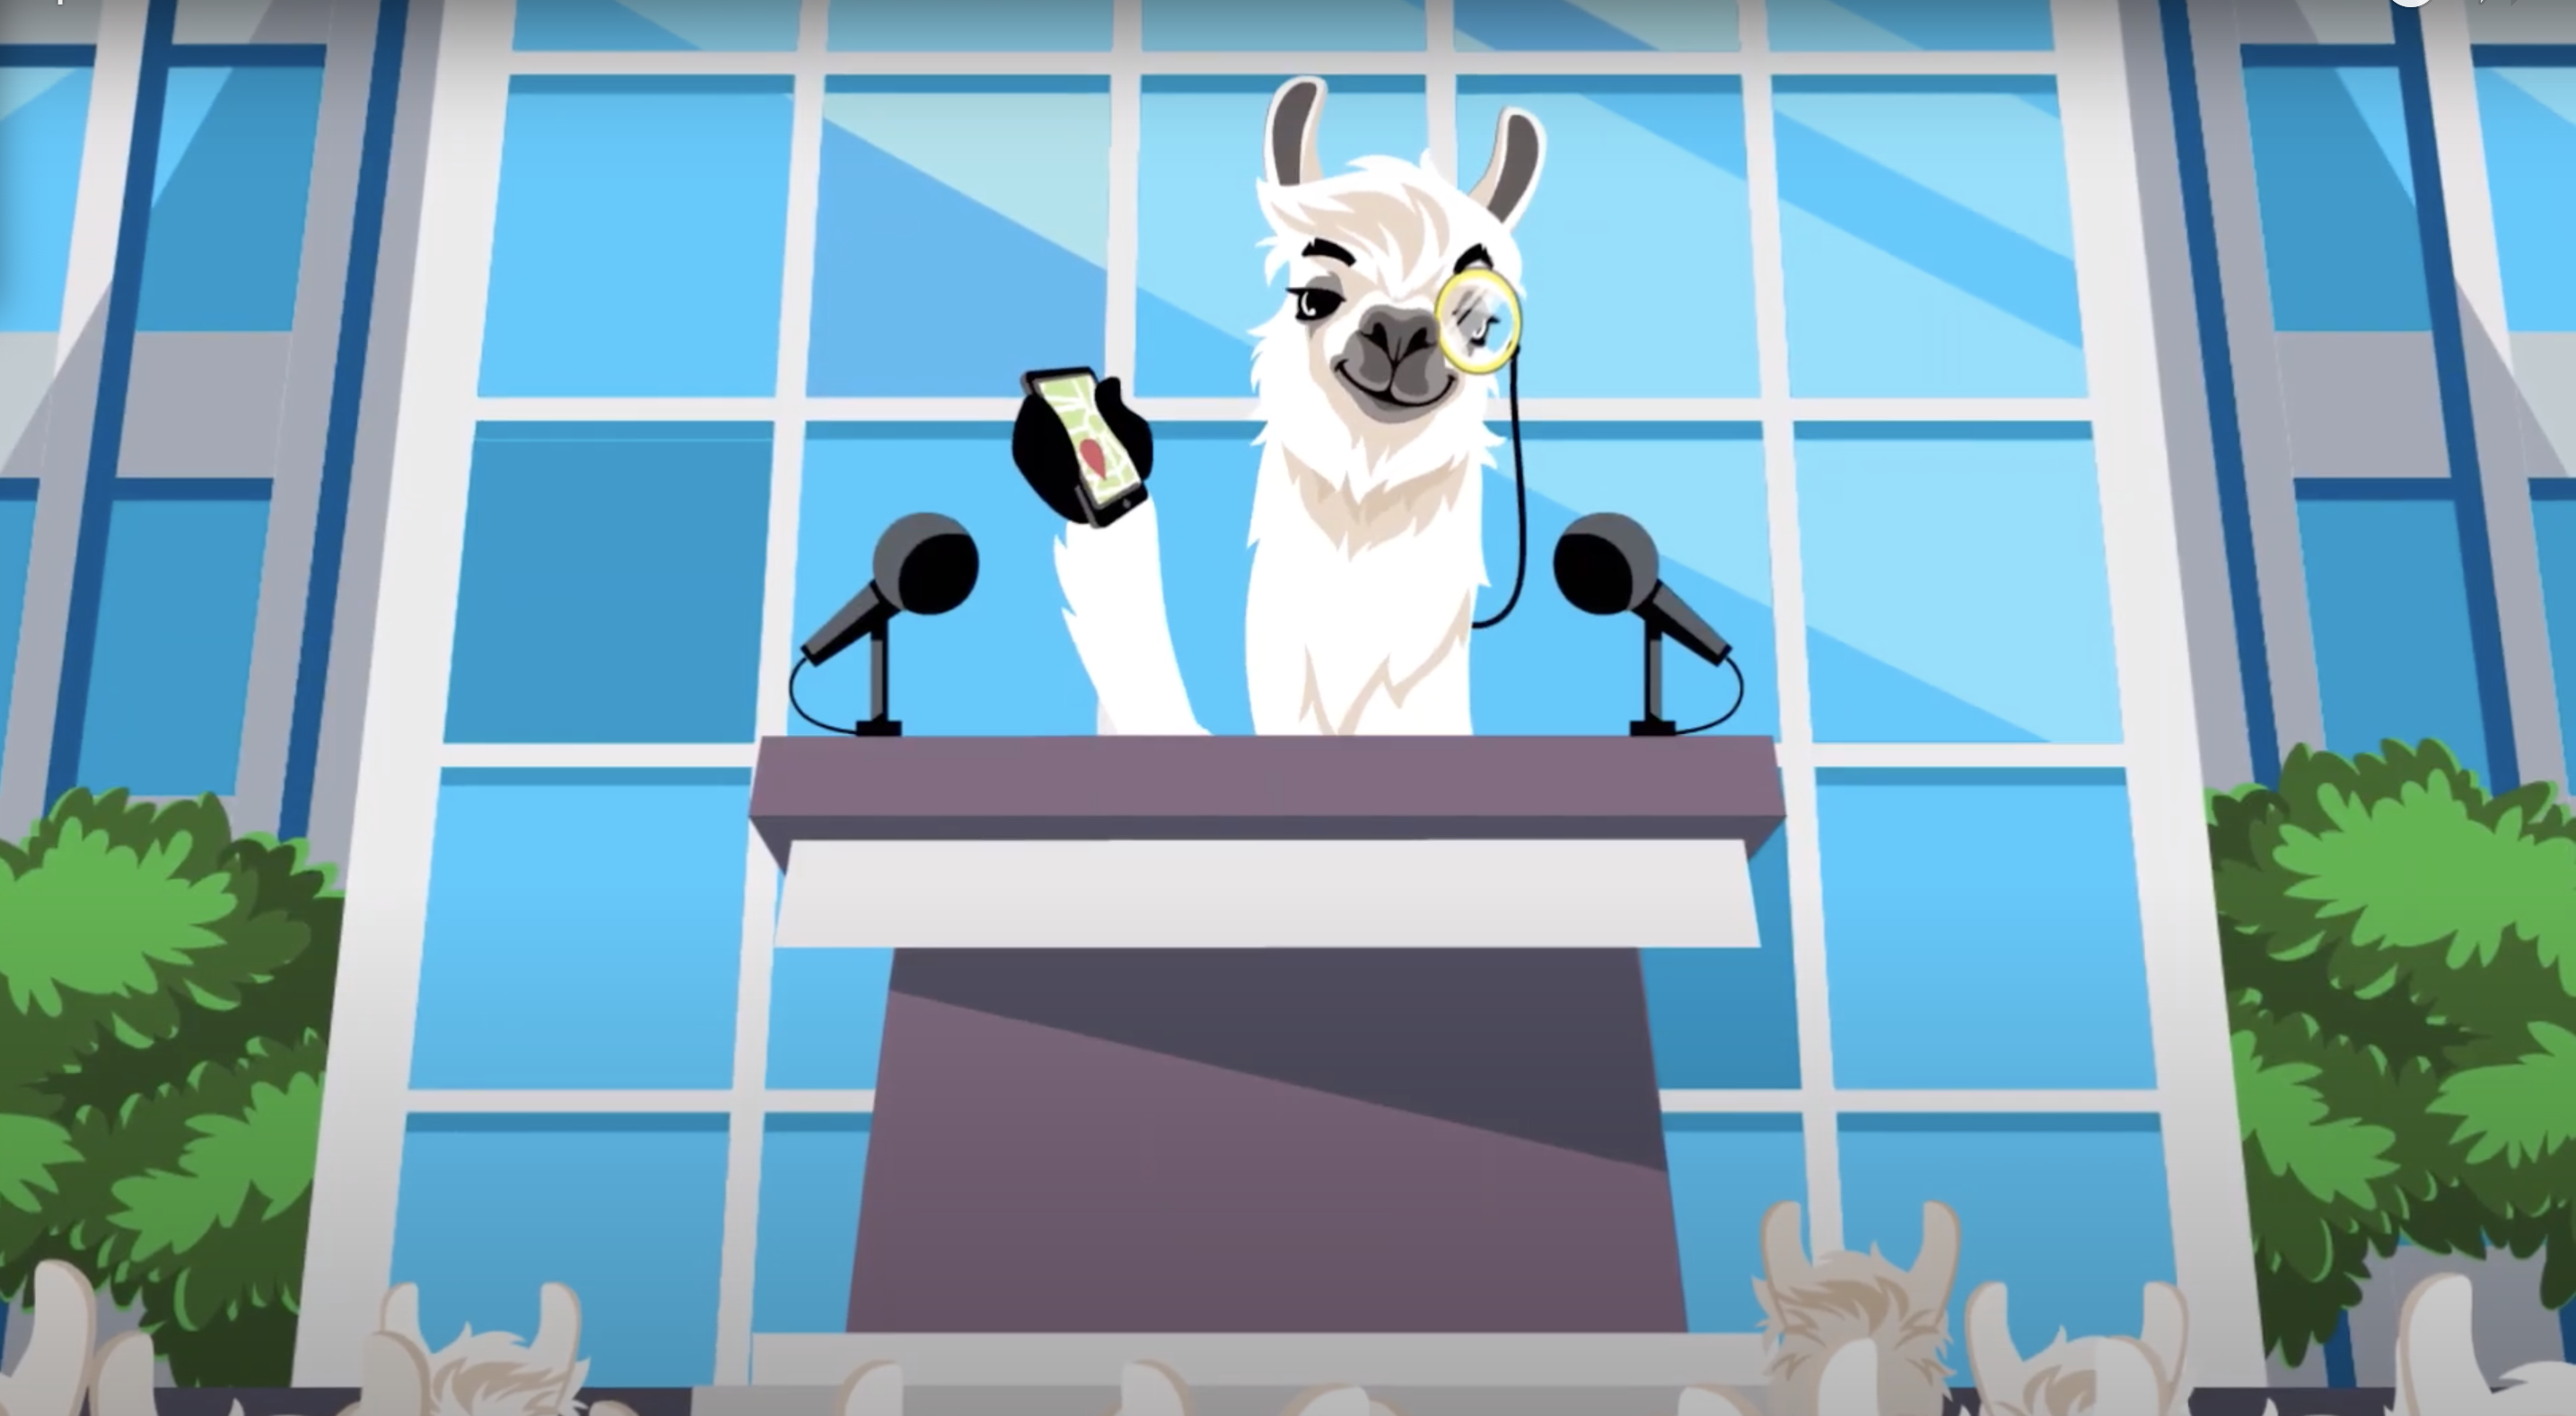 A cartoon llama wearing a monocle stands at a podium in the trailer for Upland.